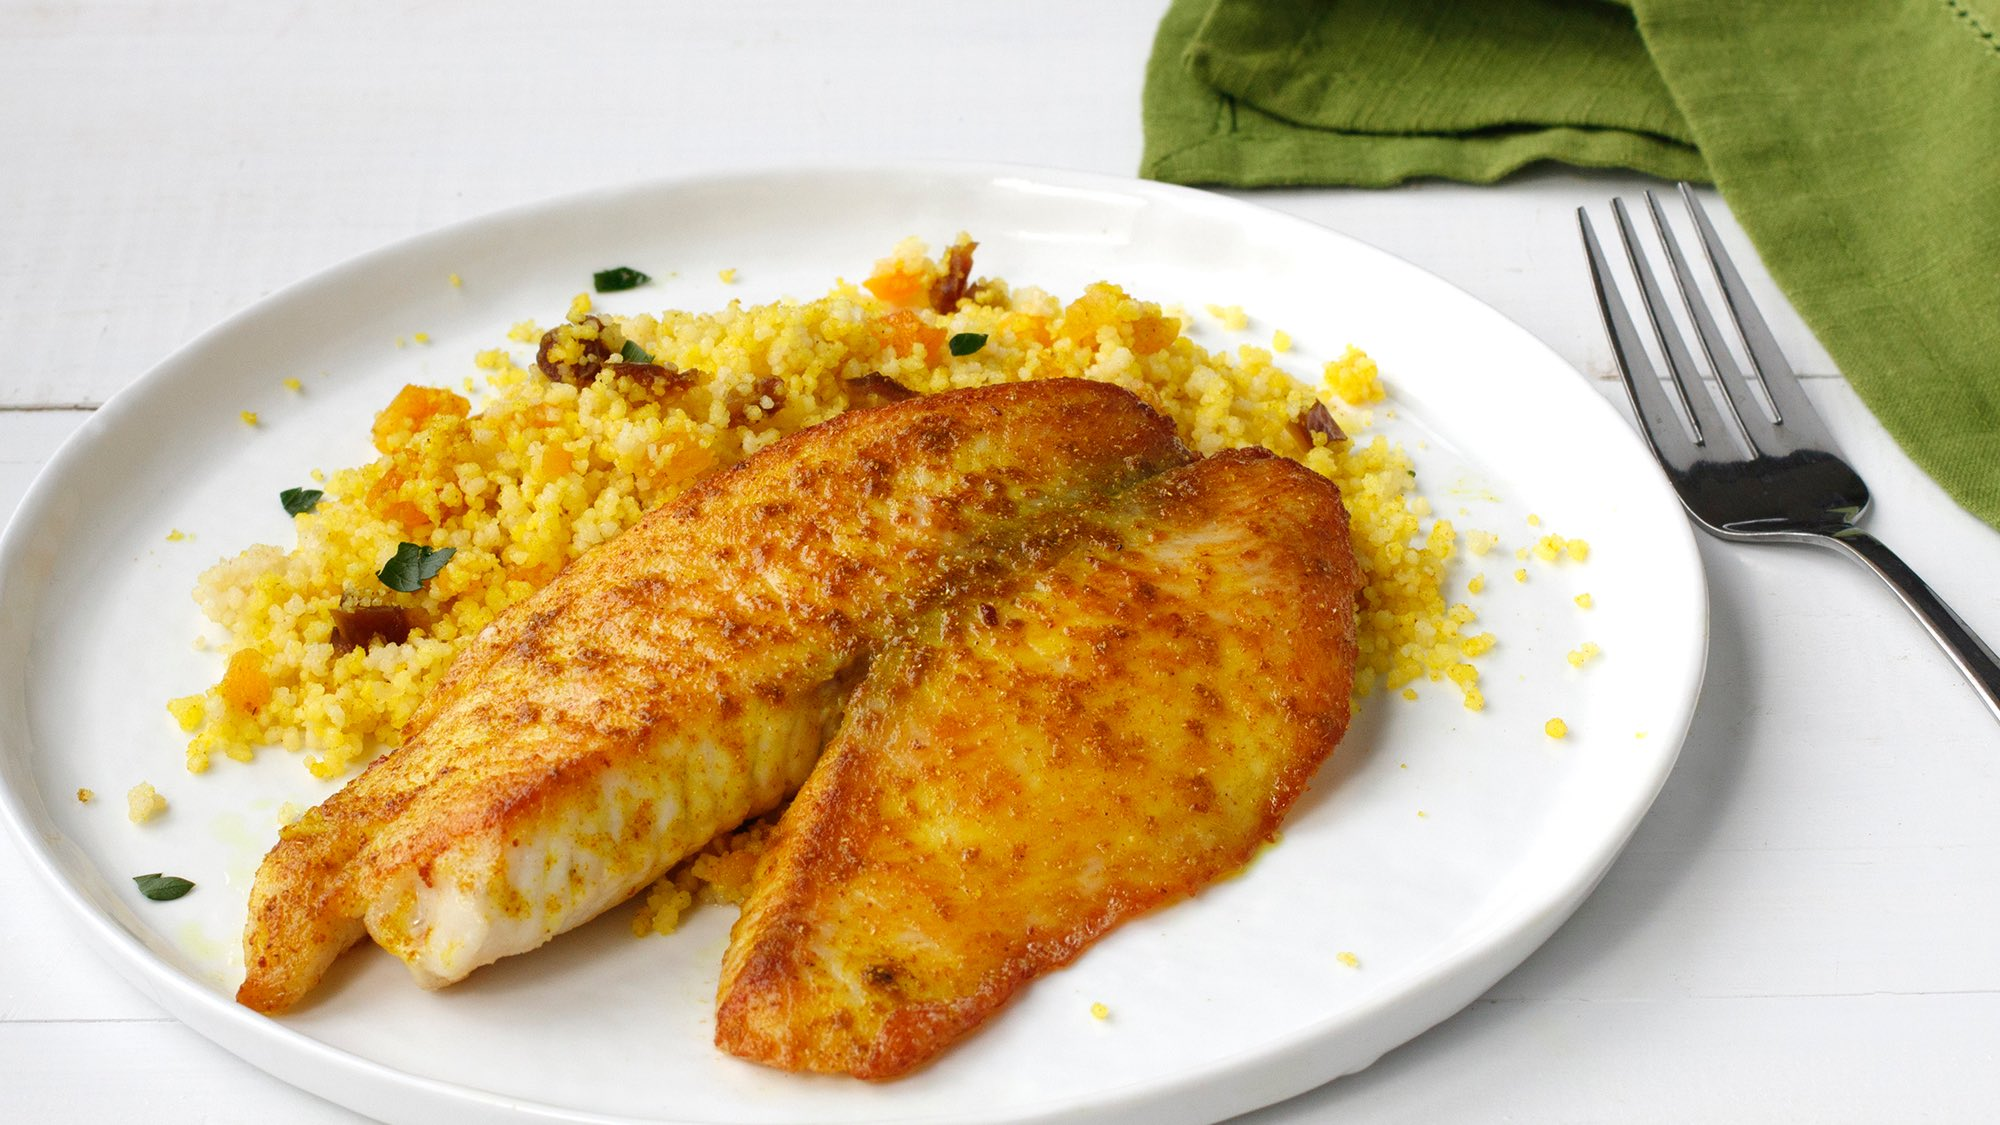 McCormick Pan-Seared Moroccan Fish with Spiced Couscous